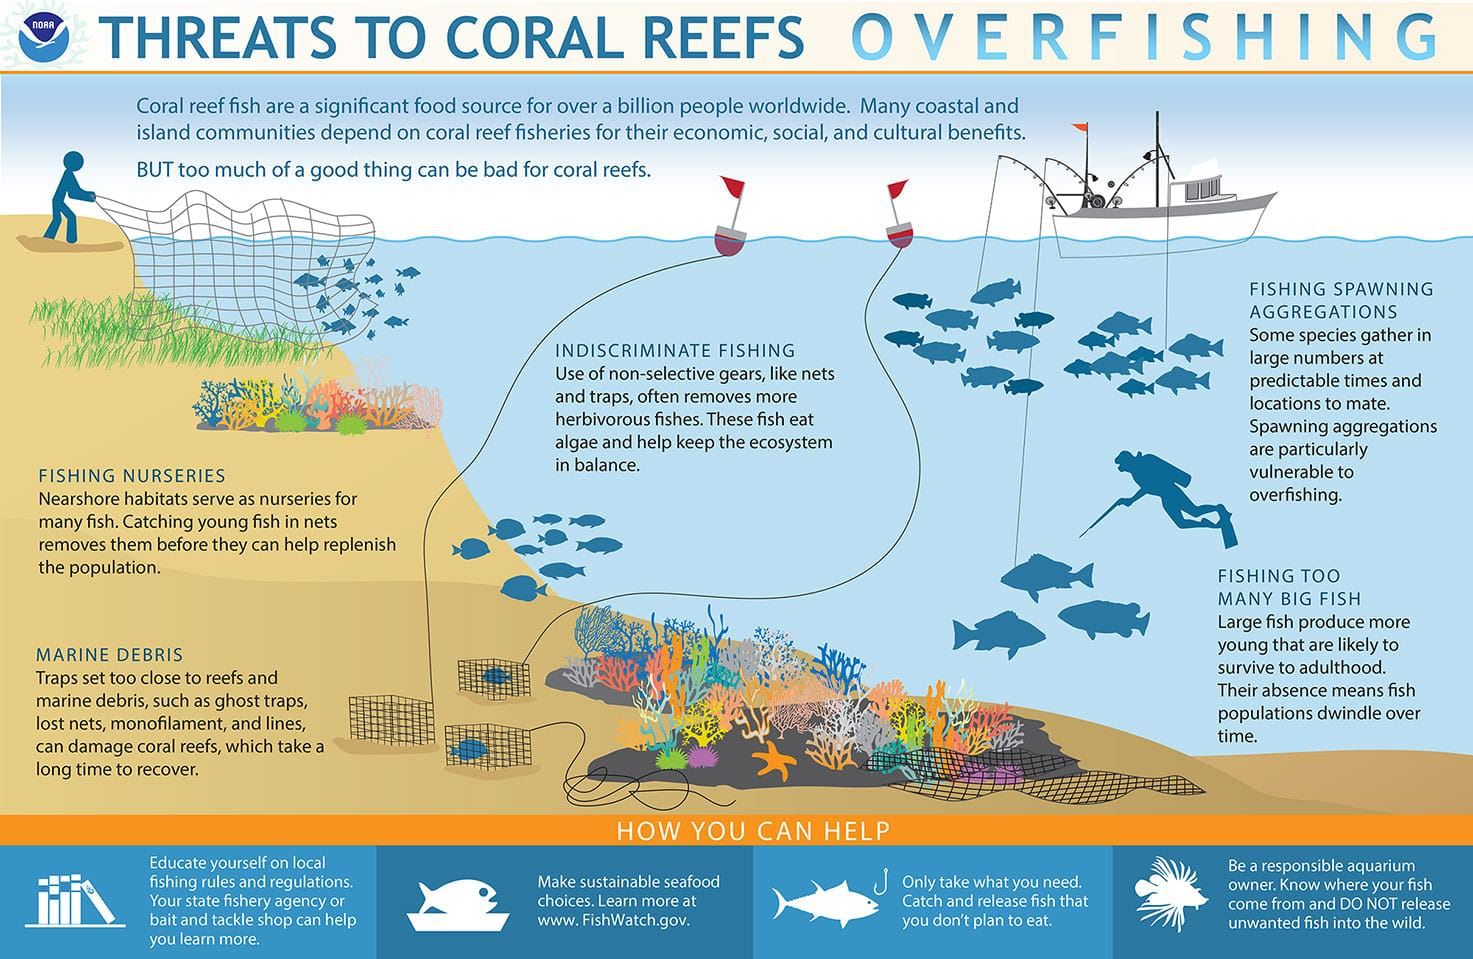 Overfishing can deplete key reef species and damage coral habitat